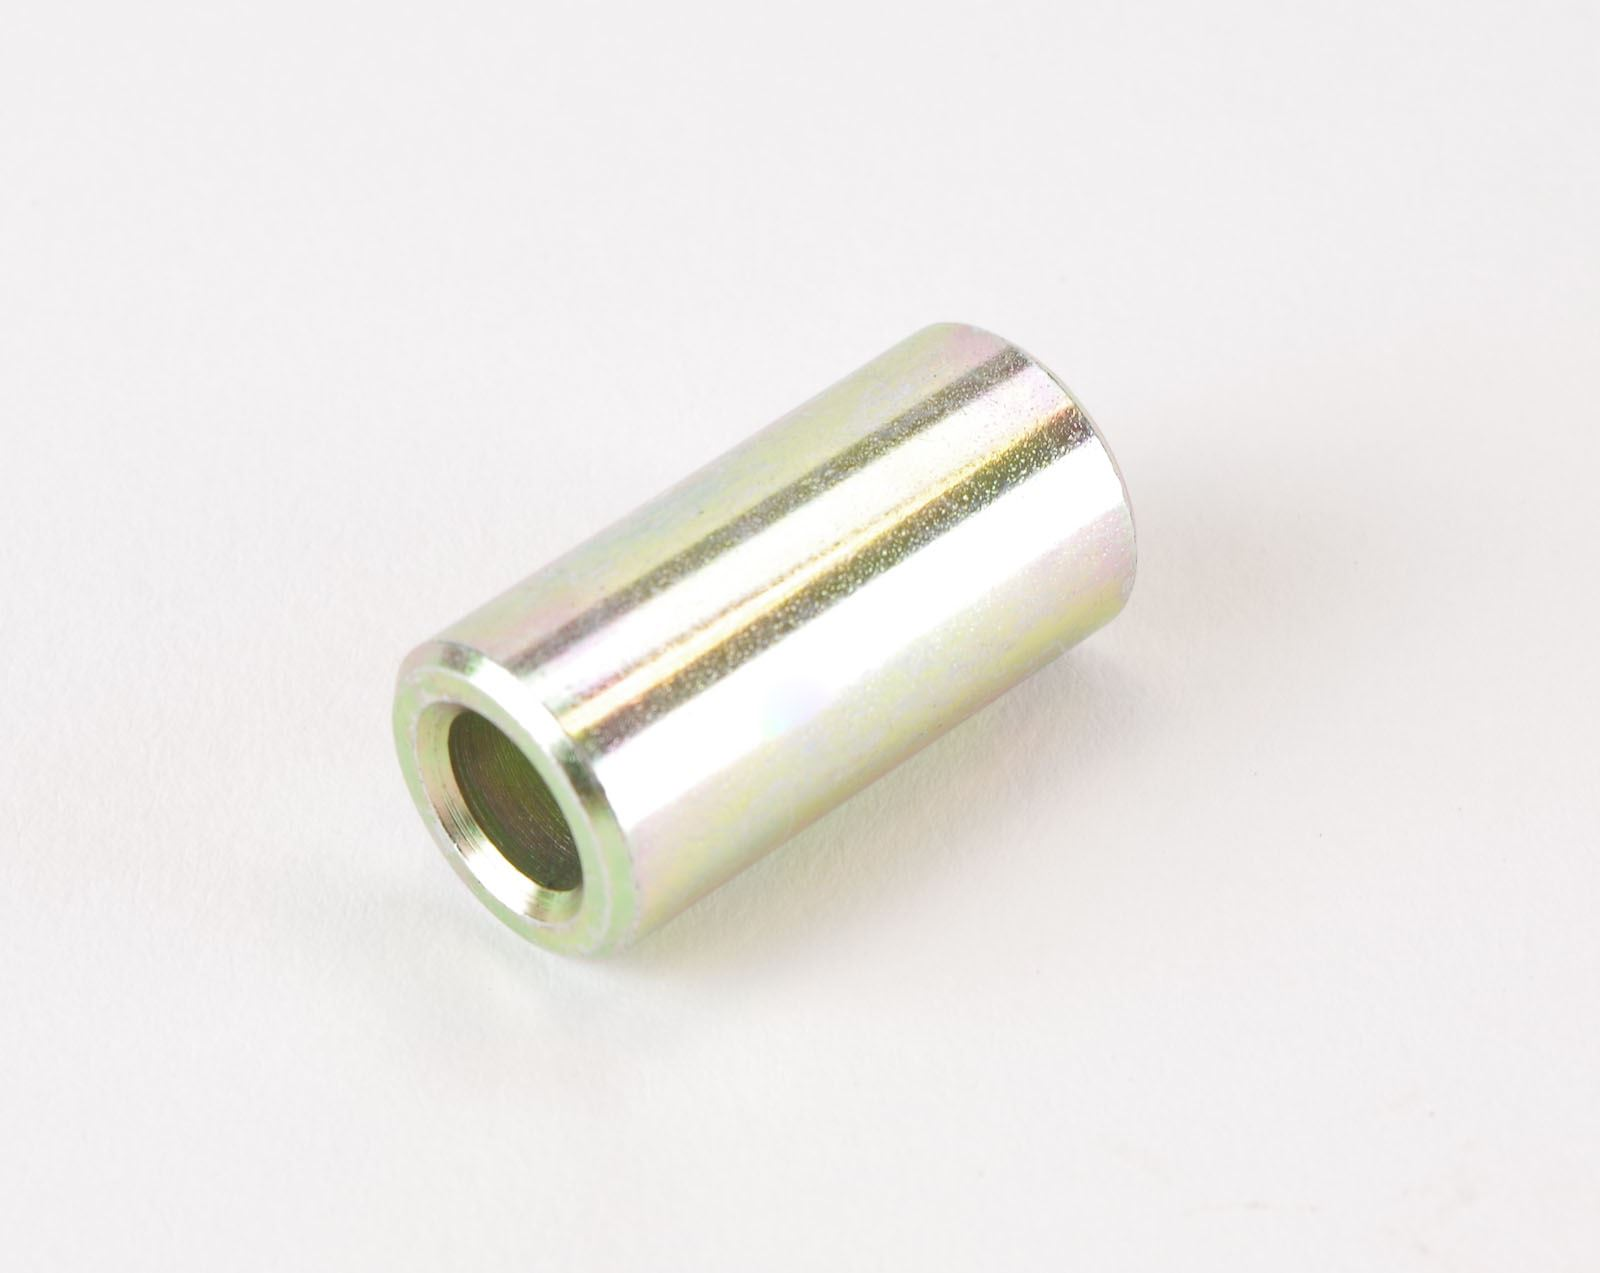 Classic Mini Moteur Steady Bush manches SPACER TUBE 21A1108 NEUF-Paire